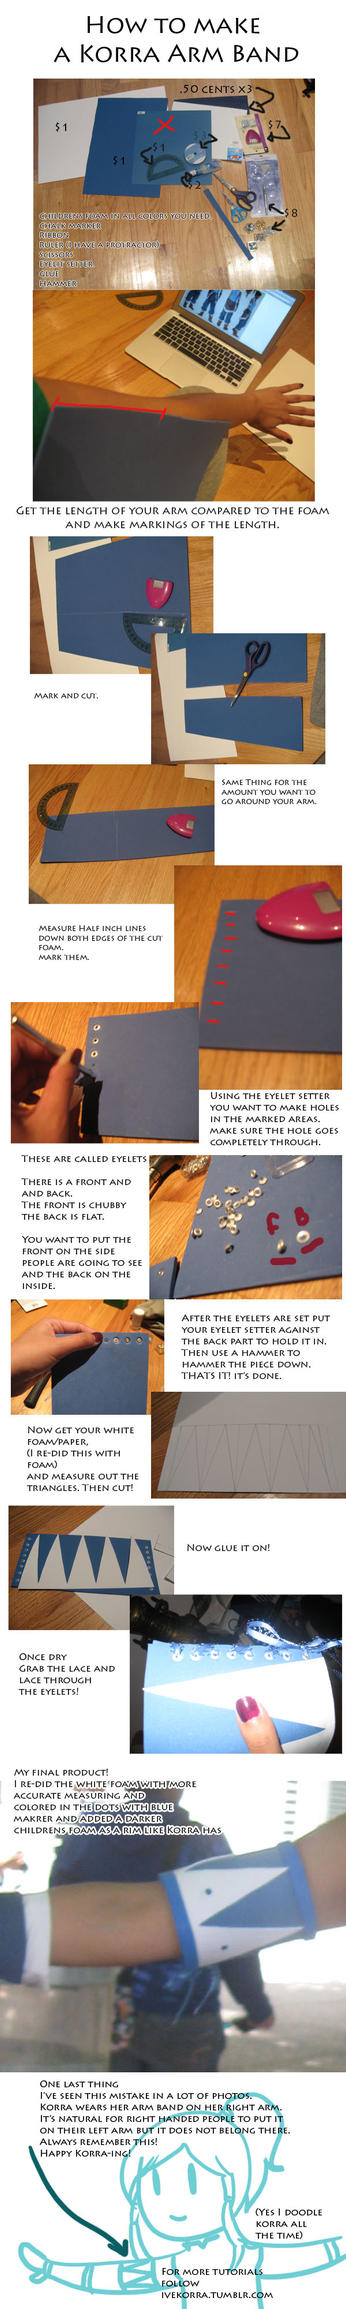 Korra Fuzzy Arm Band tutorial by Naiagu